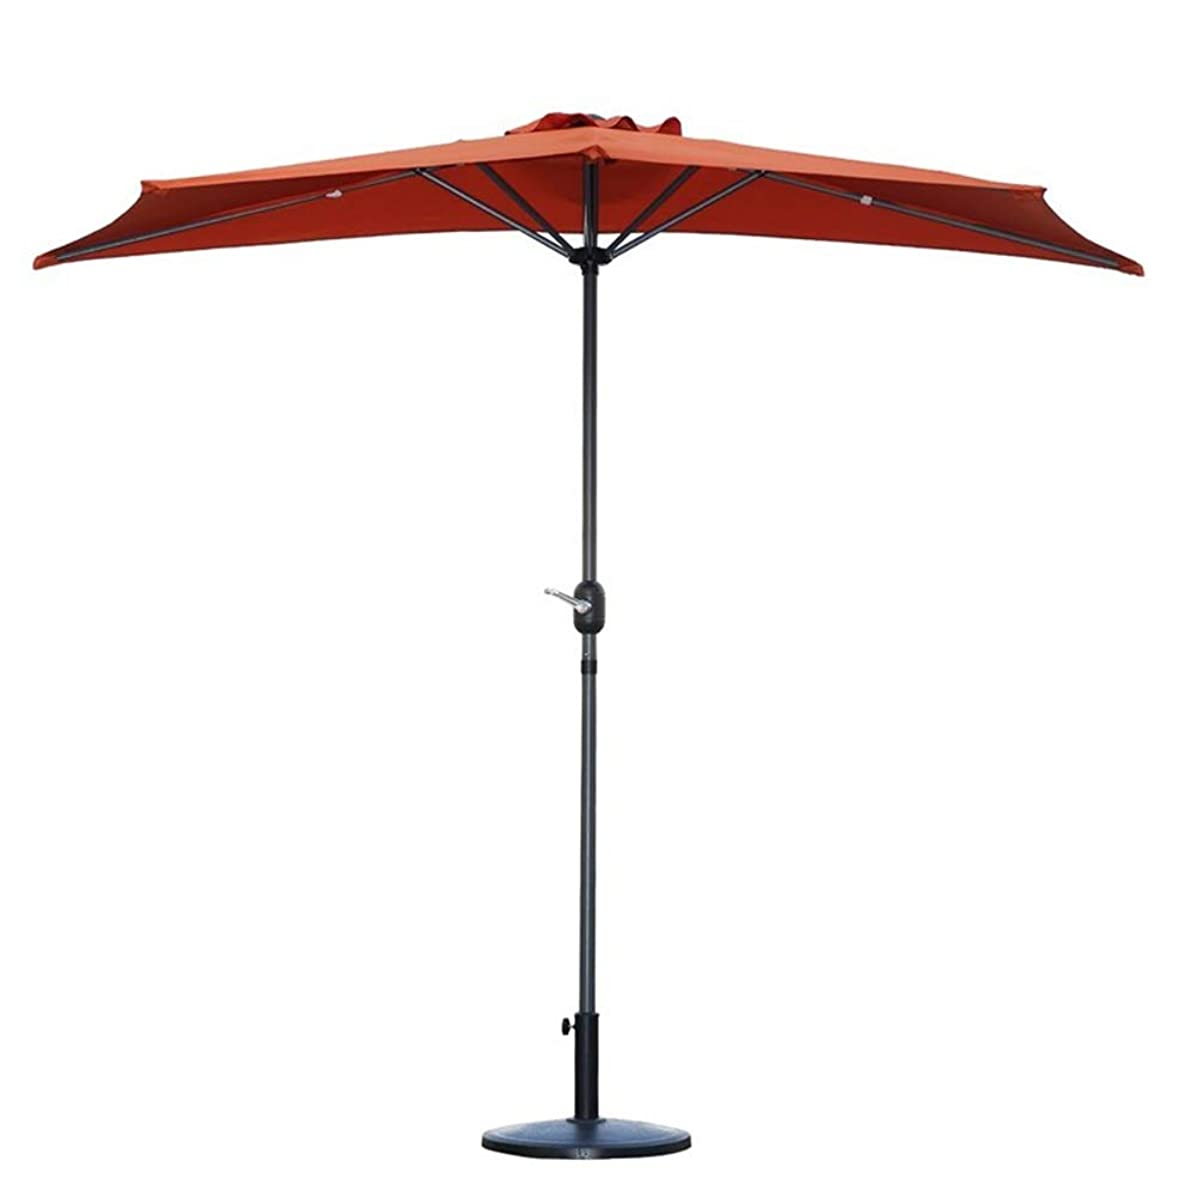 Umbrellas 2.7m(9ft) Outdoor Patio Semicircular Parasol Half with Crank, Sun Shade Semi Round Circular for Small Terrace Balcony Garden (Color : Orange)